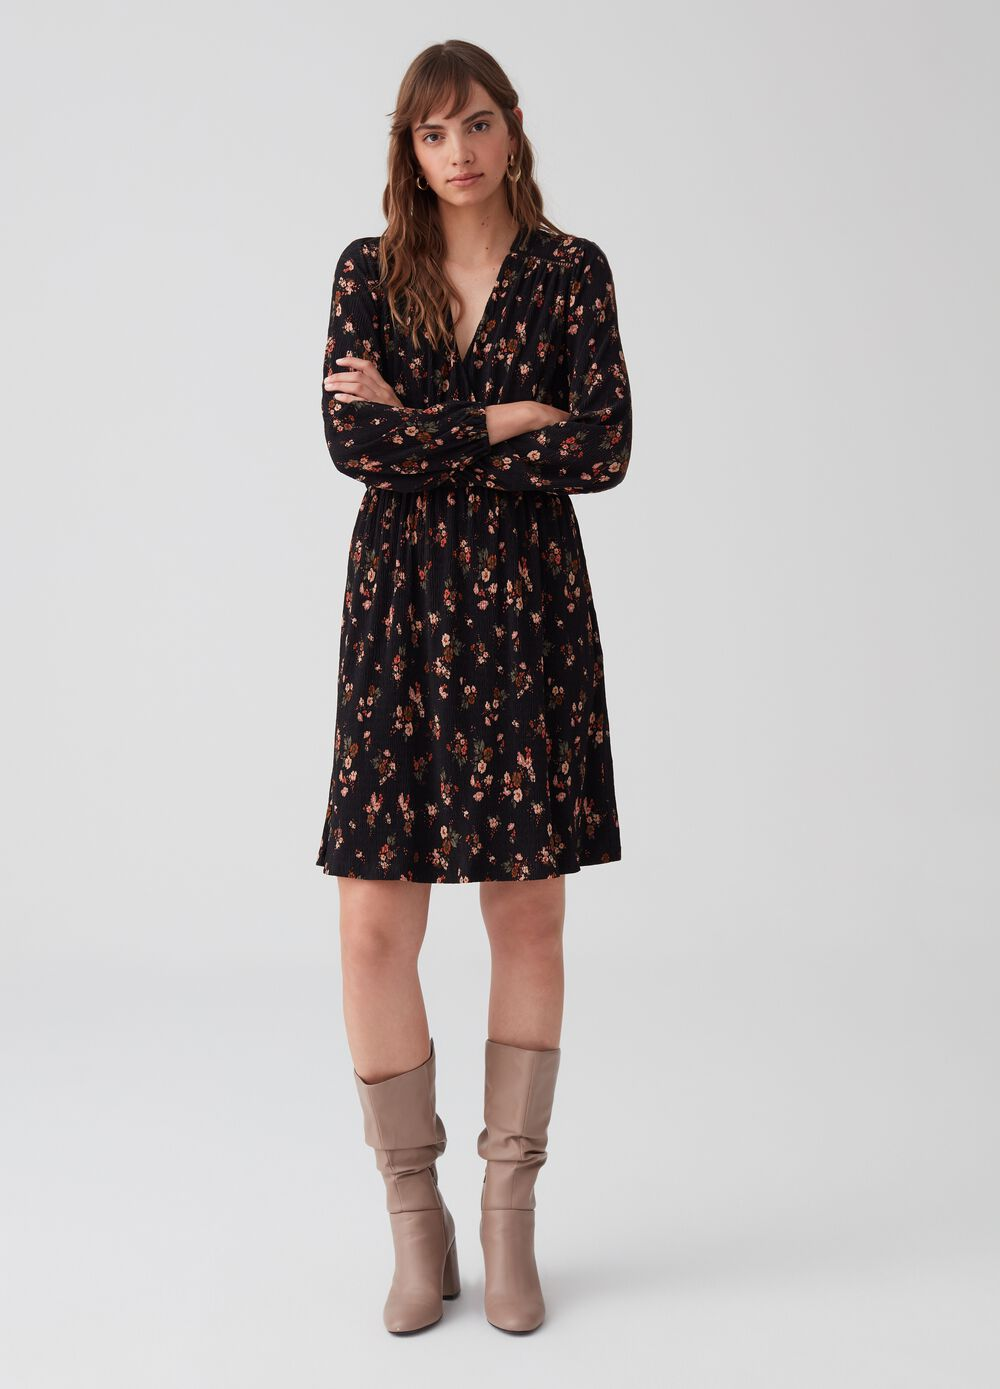 V-neck dress with floral pattern